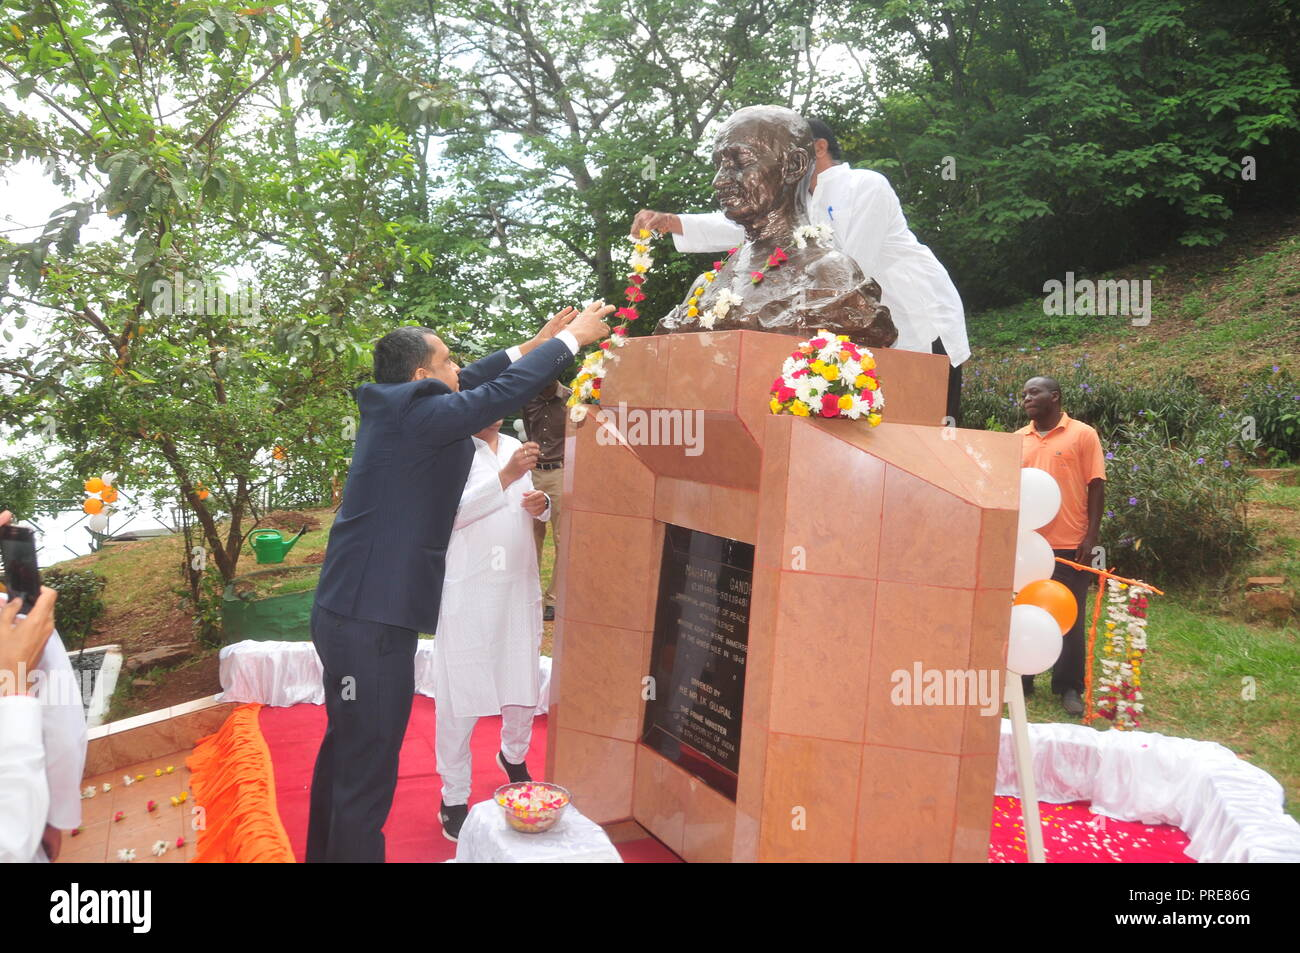 Jinja, Uganda. 2nd October, 2018: The High Commissioner of India in Uganda Ravi Shankar (left) garlanding Mahatma Gandhi's Statue with flowers during celebrations to mark Mahatma Gandhi's 149th Birthday and UN International Day of Non Violence at the Source of the Nile in Jinja. Members of the Indian Association Uganda, officials from Busoga Kingdom Tourism Ministry and Jinja residents joined other Indians all over the World in celebrating the 149th birthday of Mahatma Gandhi and the International Day of Non-Violence. In Uganda, they garlanded Mahatma Gandhi's Statue with flowers. Credit: Dona - Stock Image